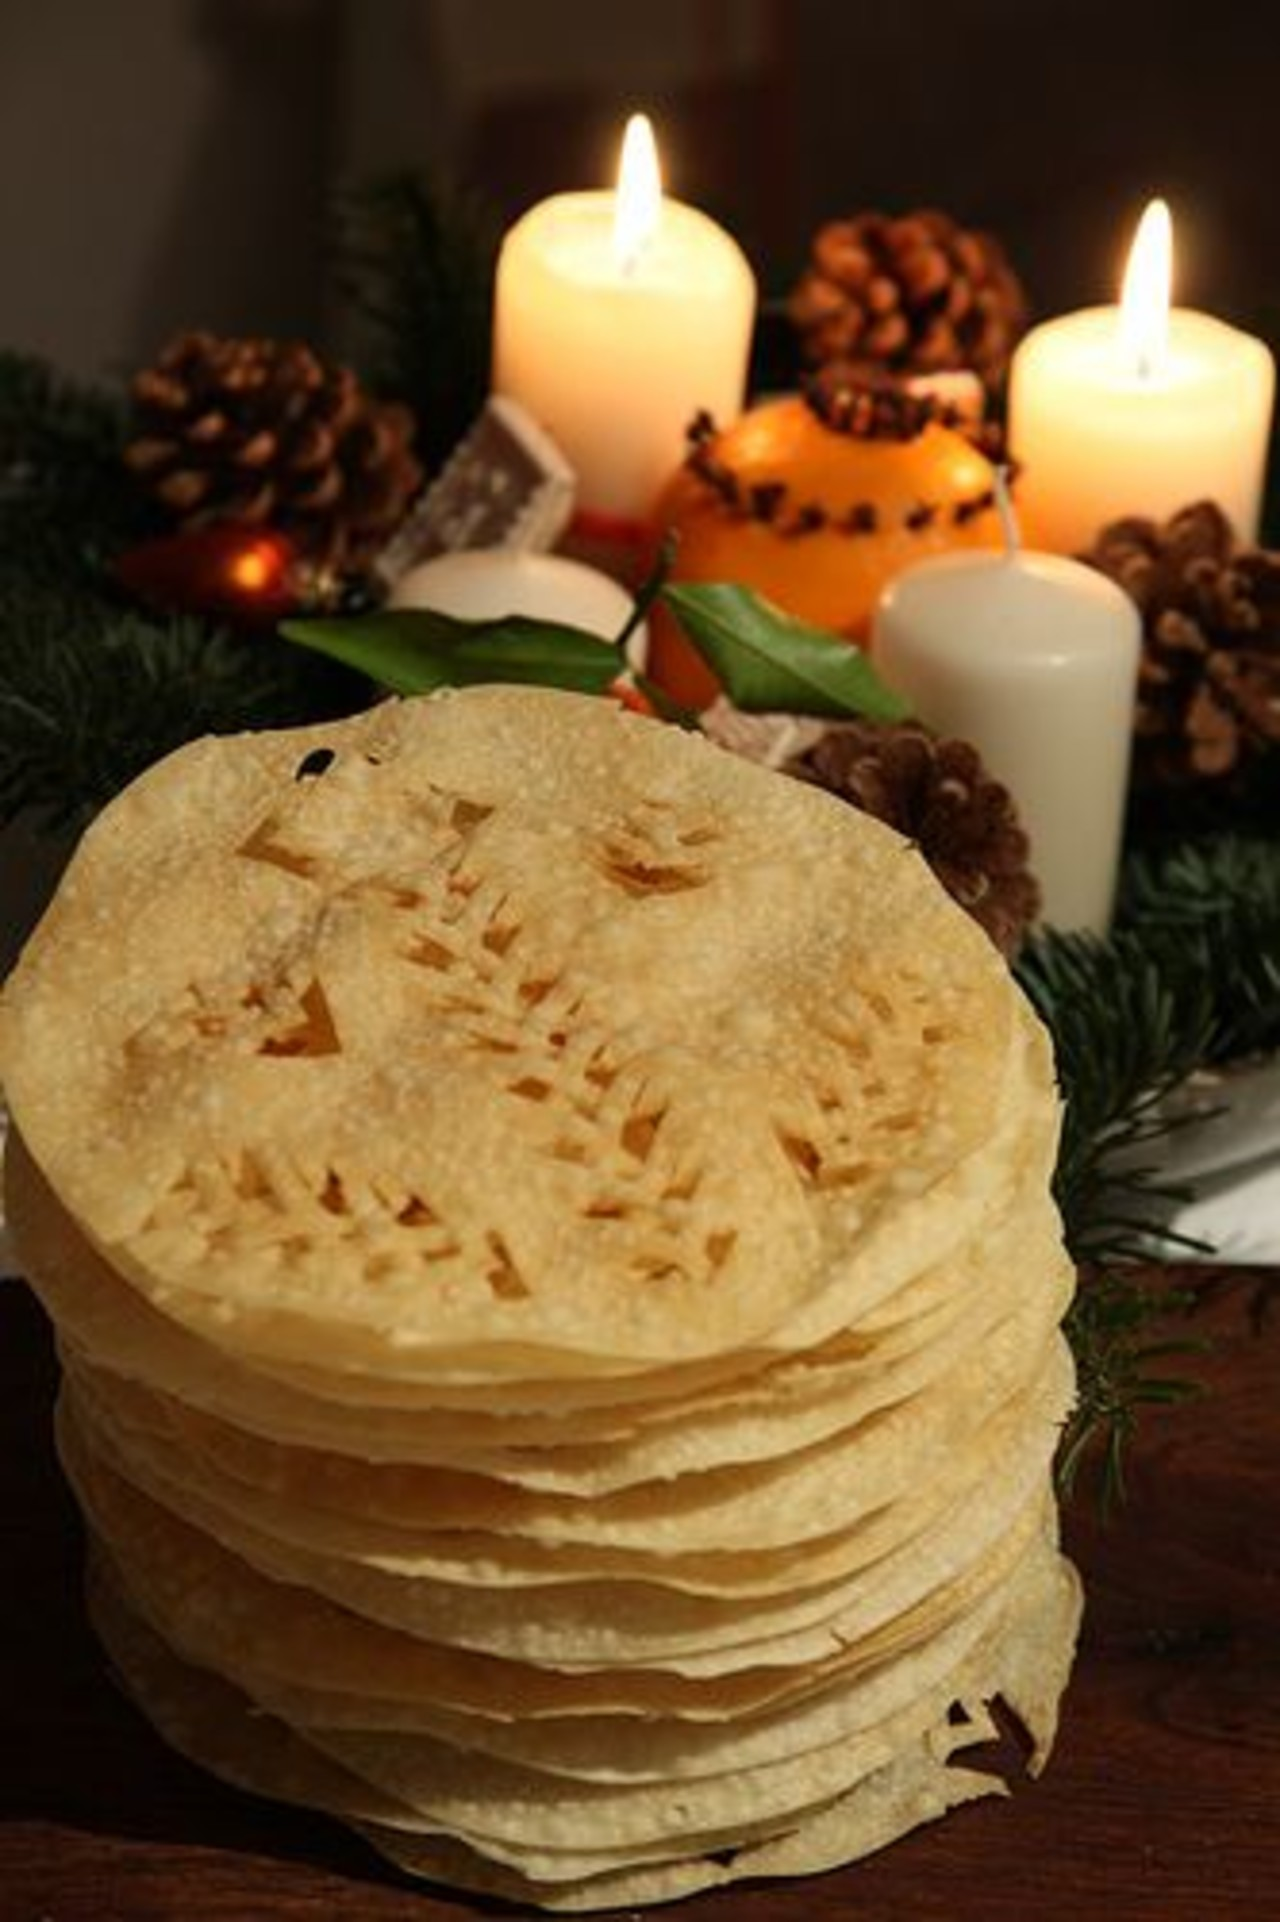 Icelandic Christmas bread bread set on a table with candles in the background